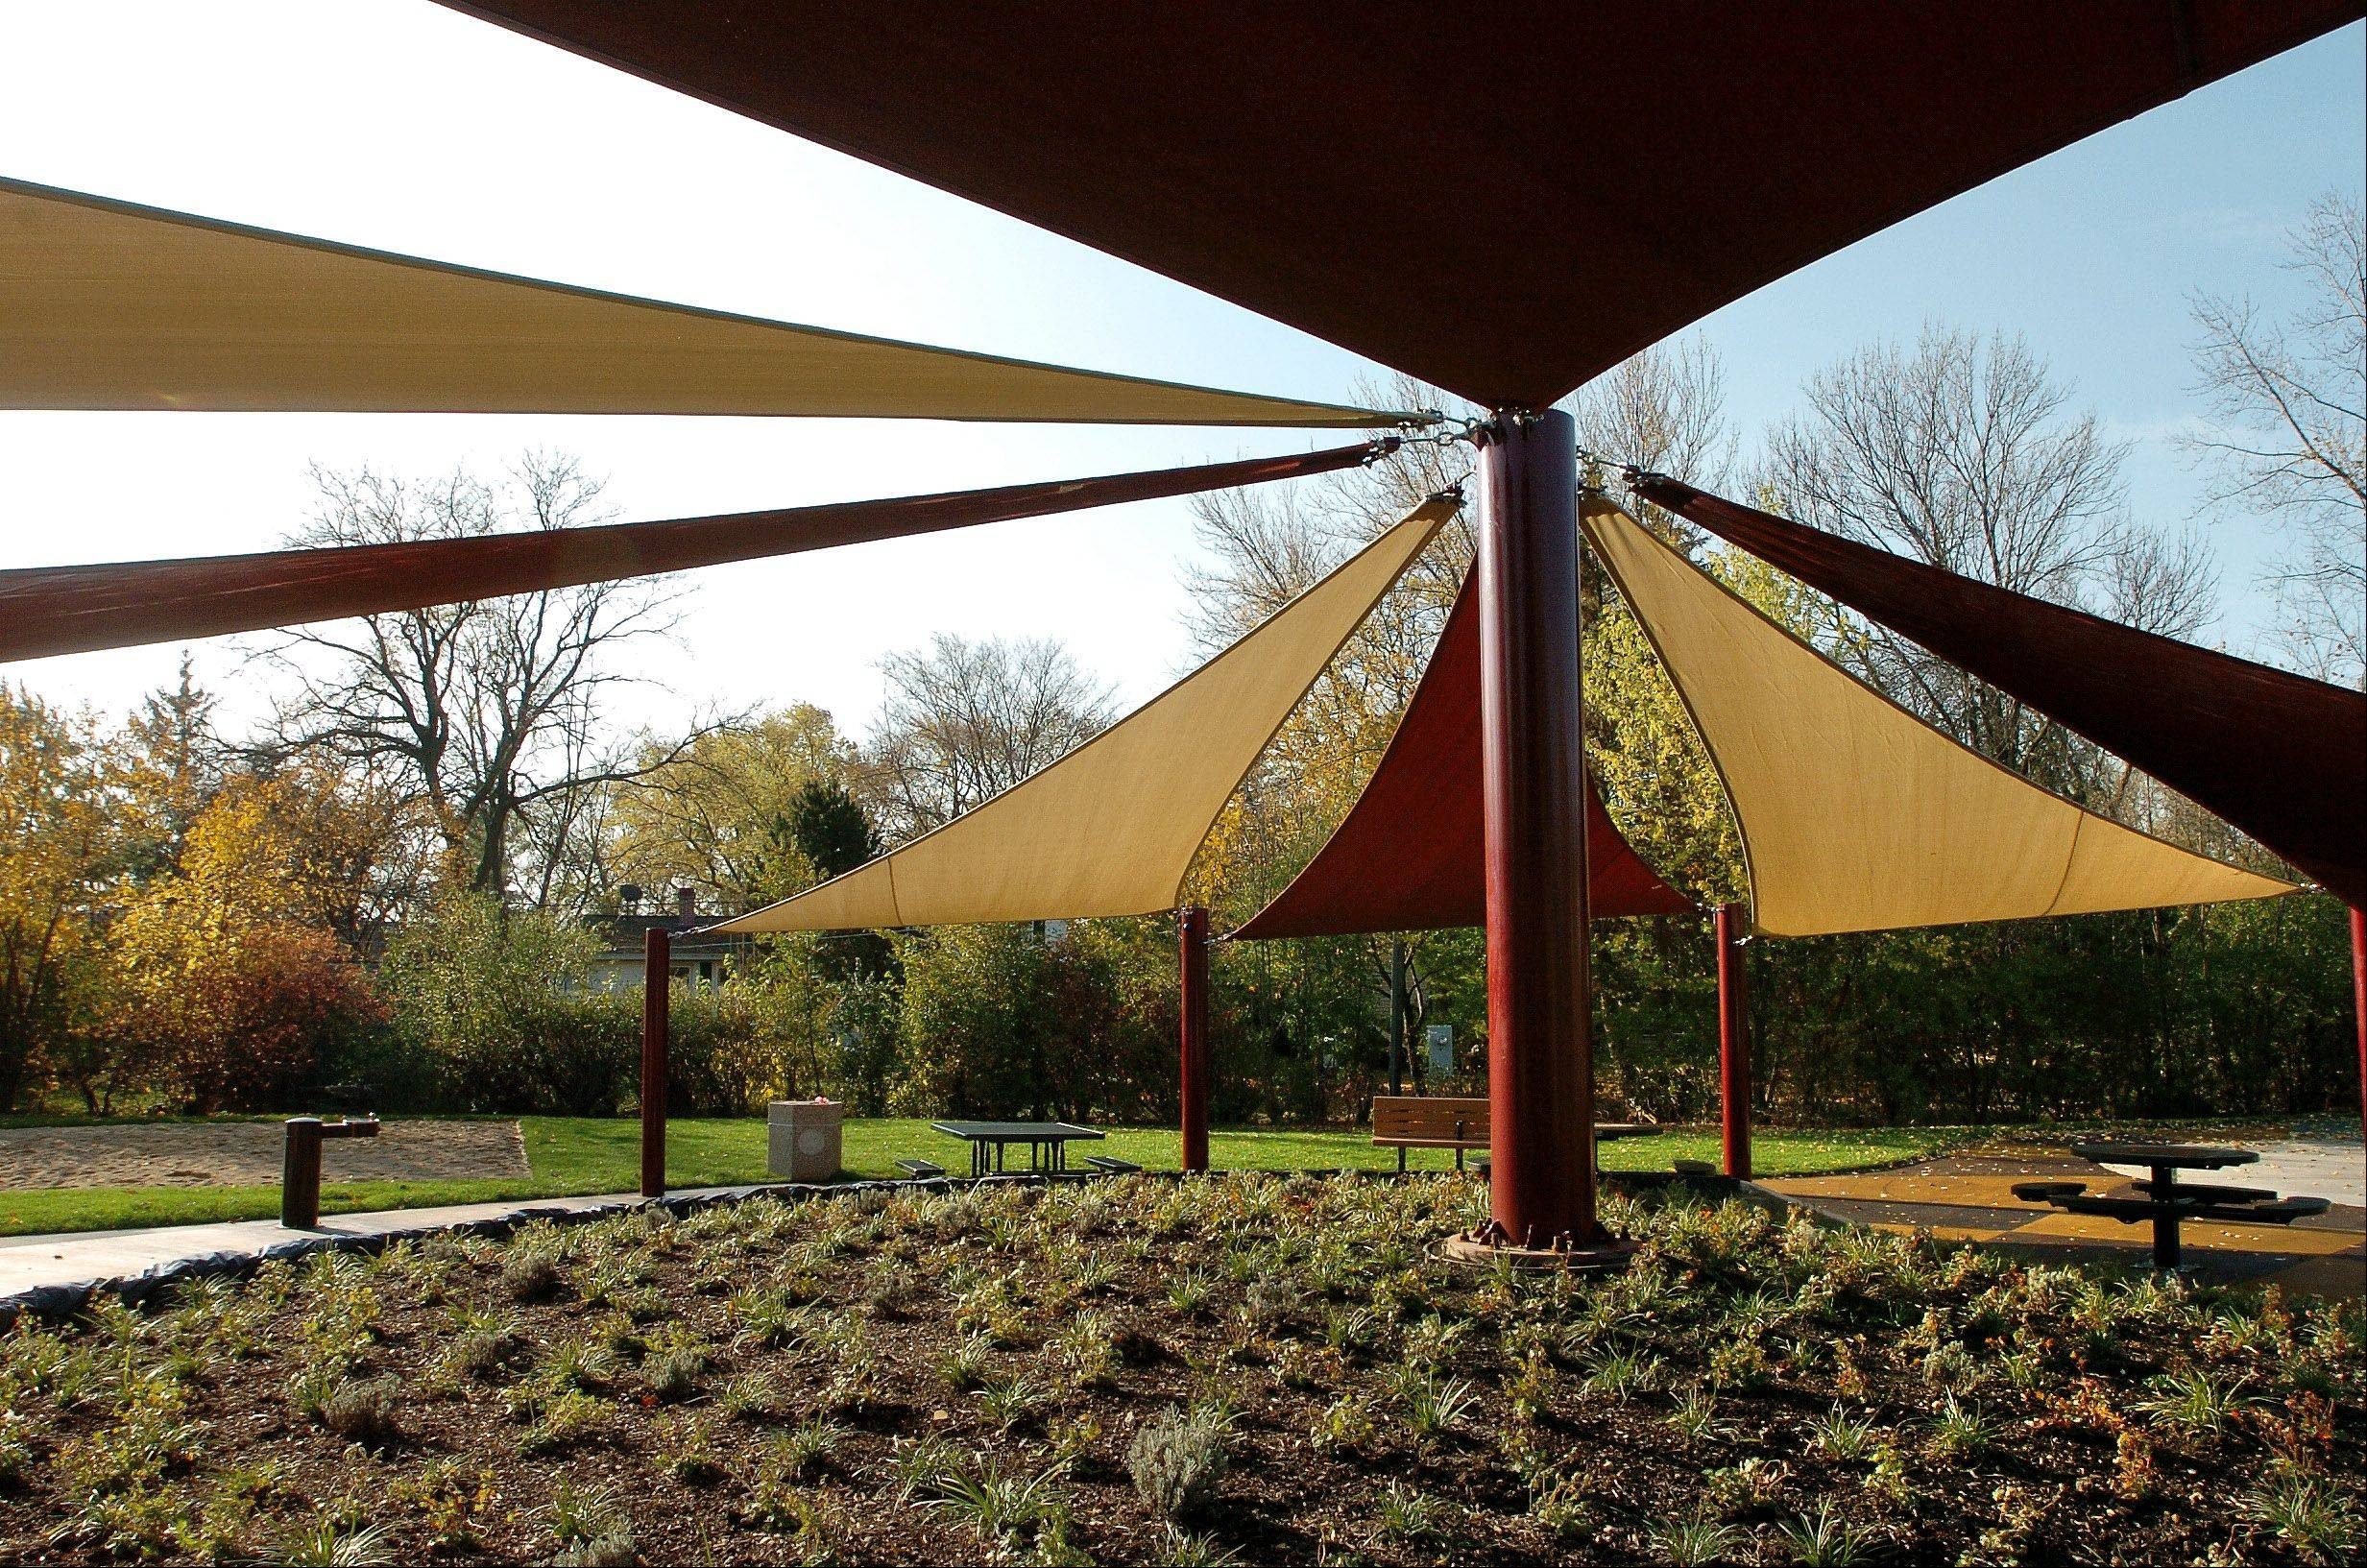 Landscaped area underneath fabric shade shelter at the new Tropicana Park in Hoffman Estates.